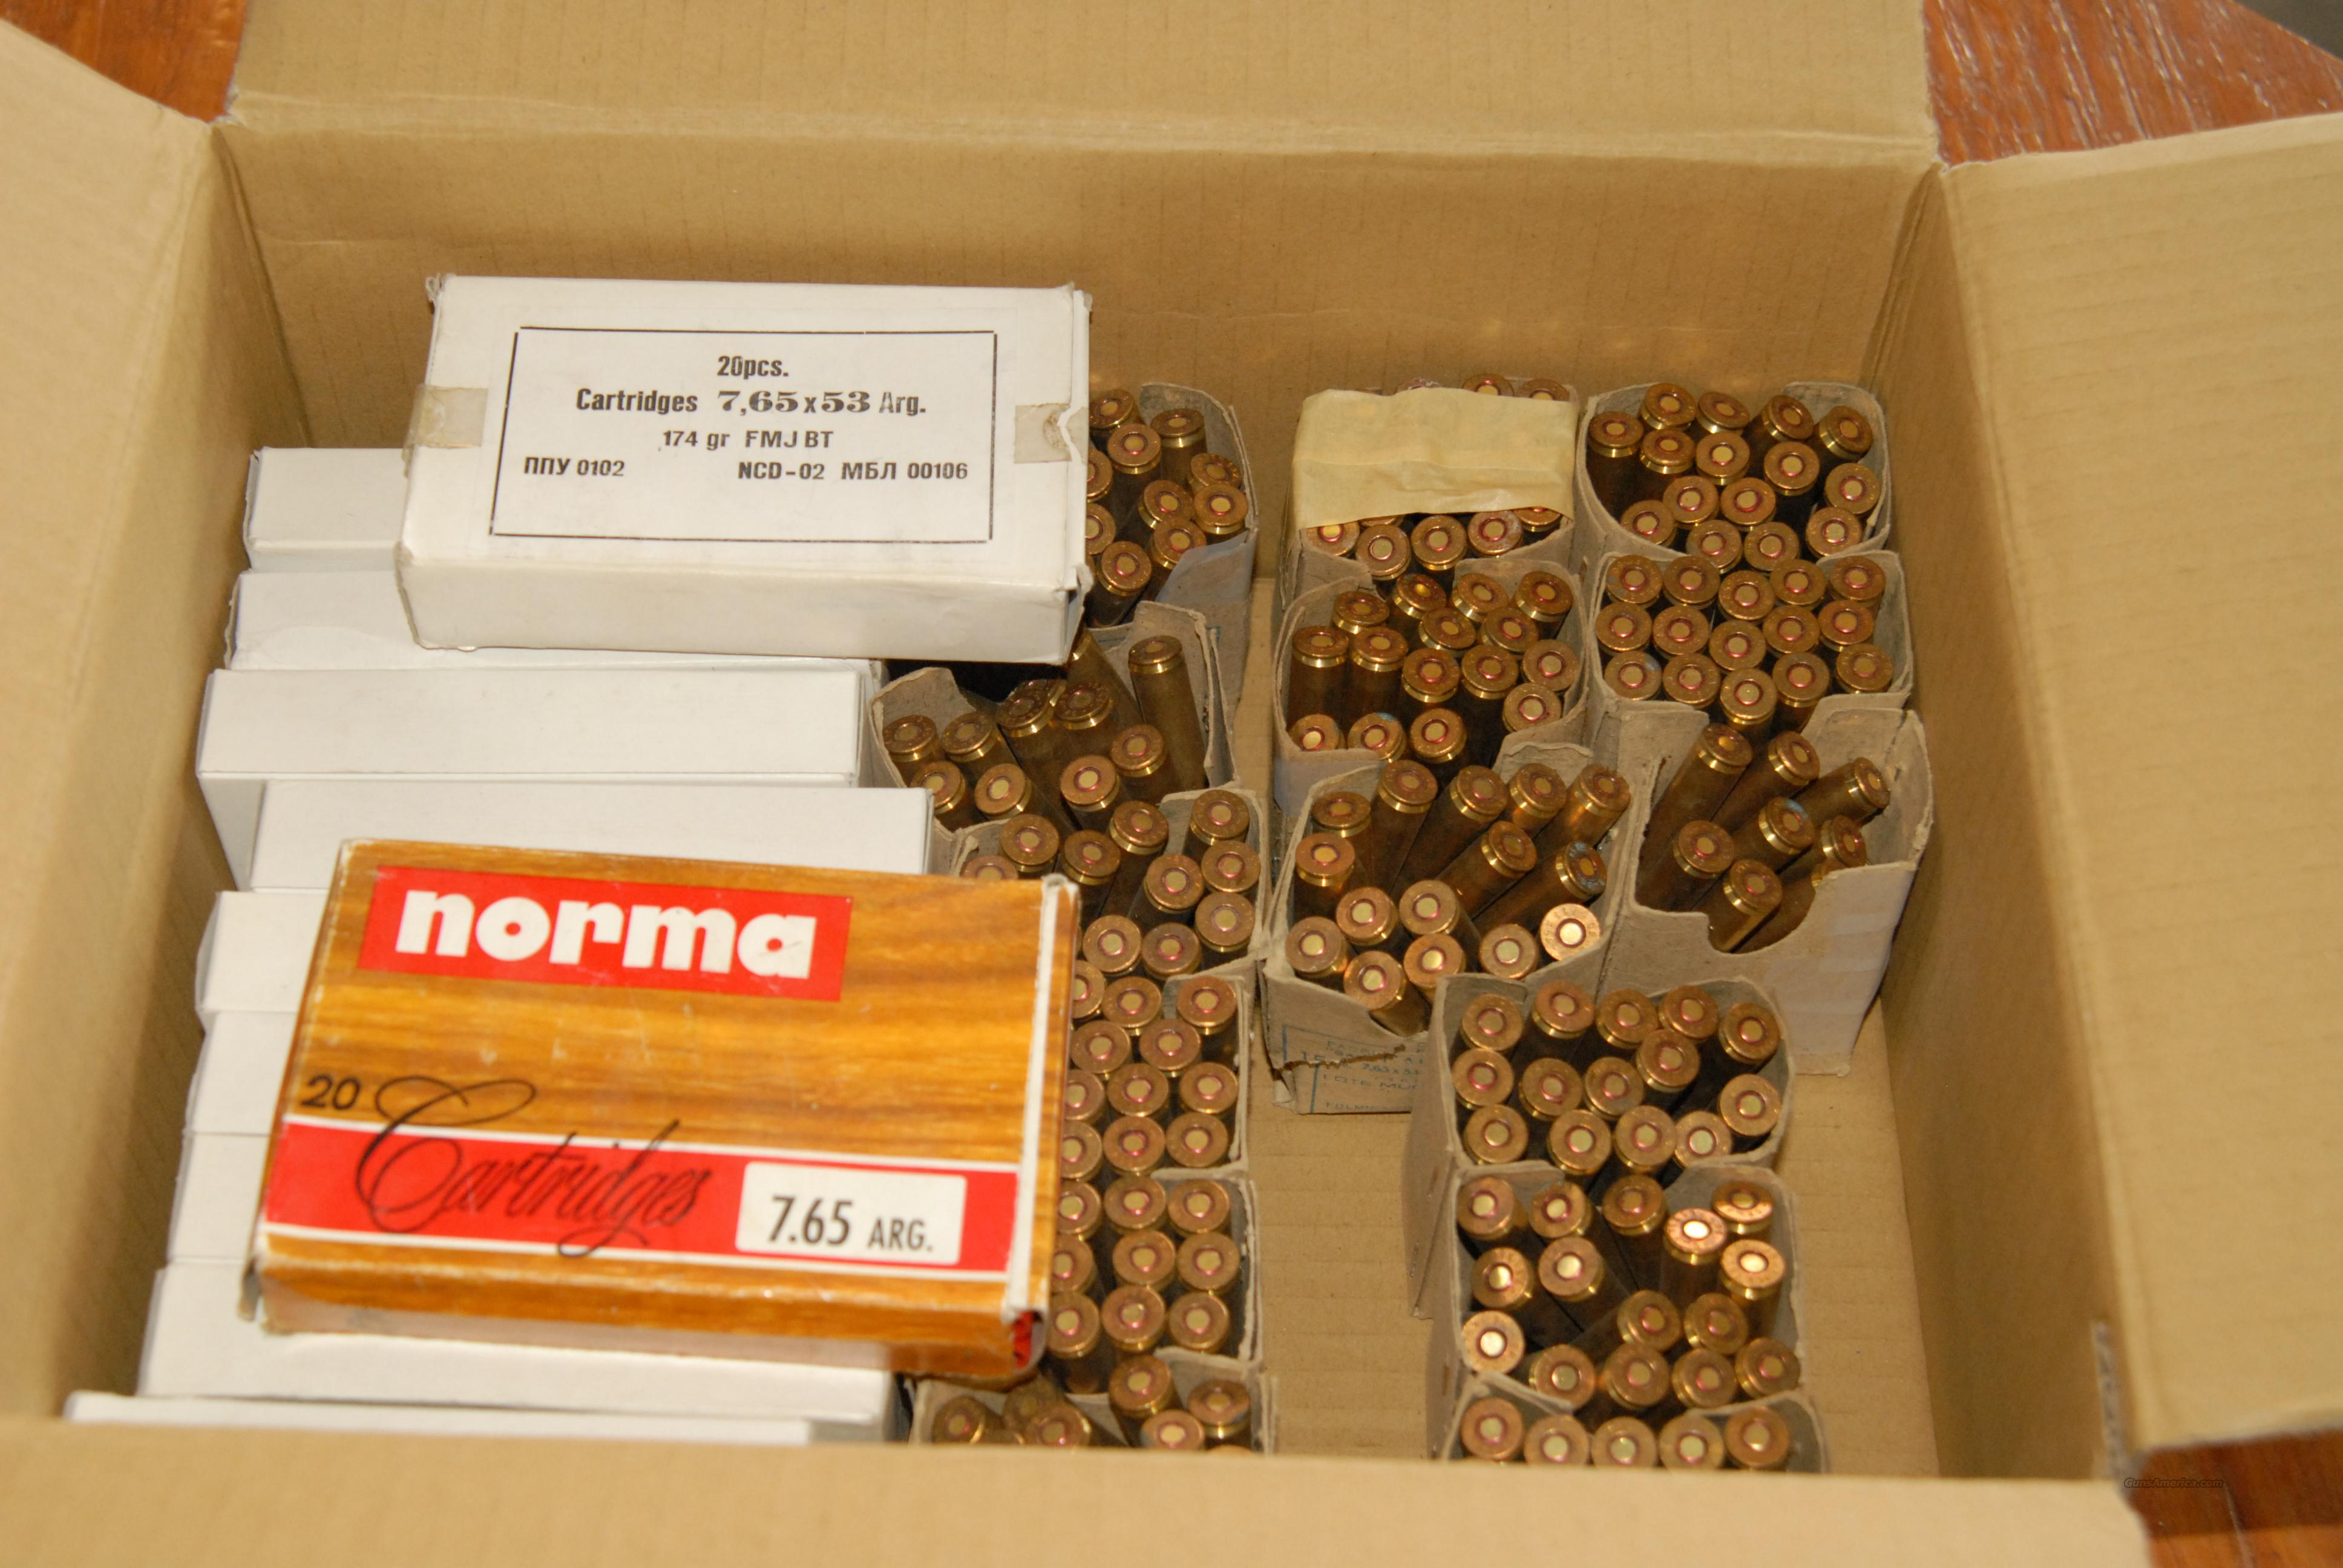 7.65 Argentine Rifle Ammo - 440 Rounds  Non-Guns > Ammunition